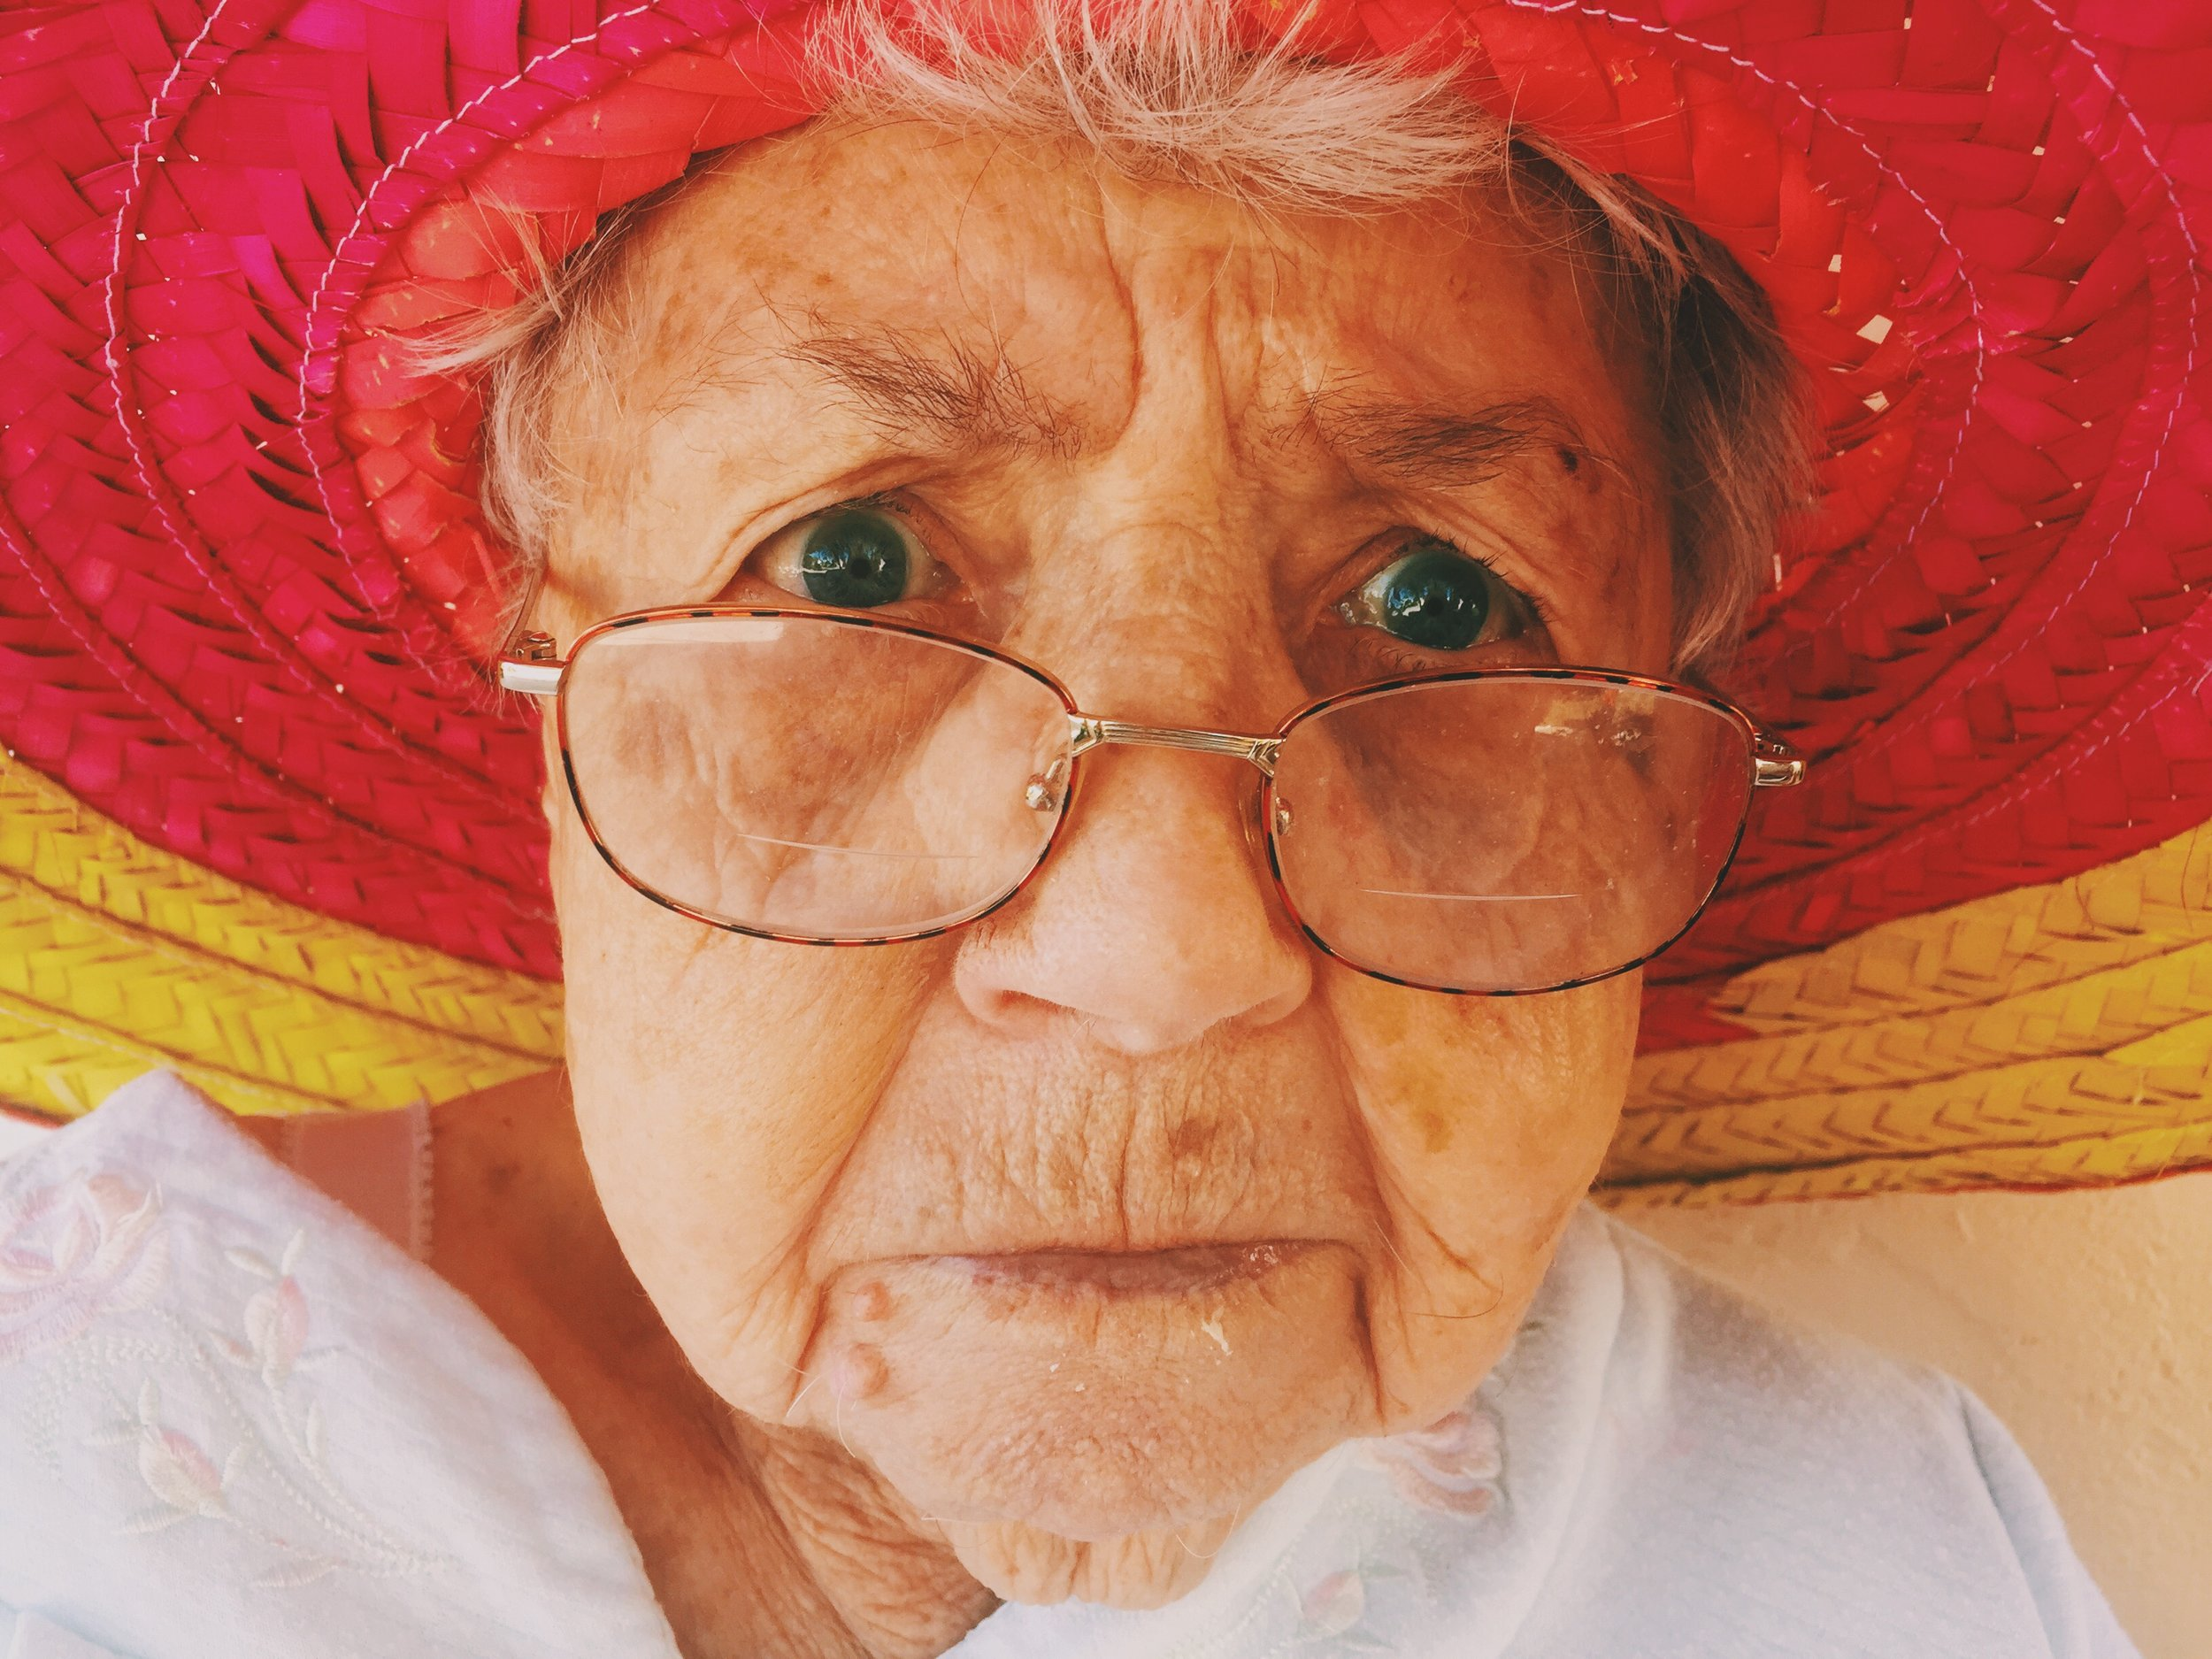 Grandma wearing glasses and hat scowling at camera. Photo by Unsplash